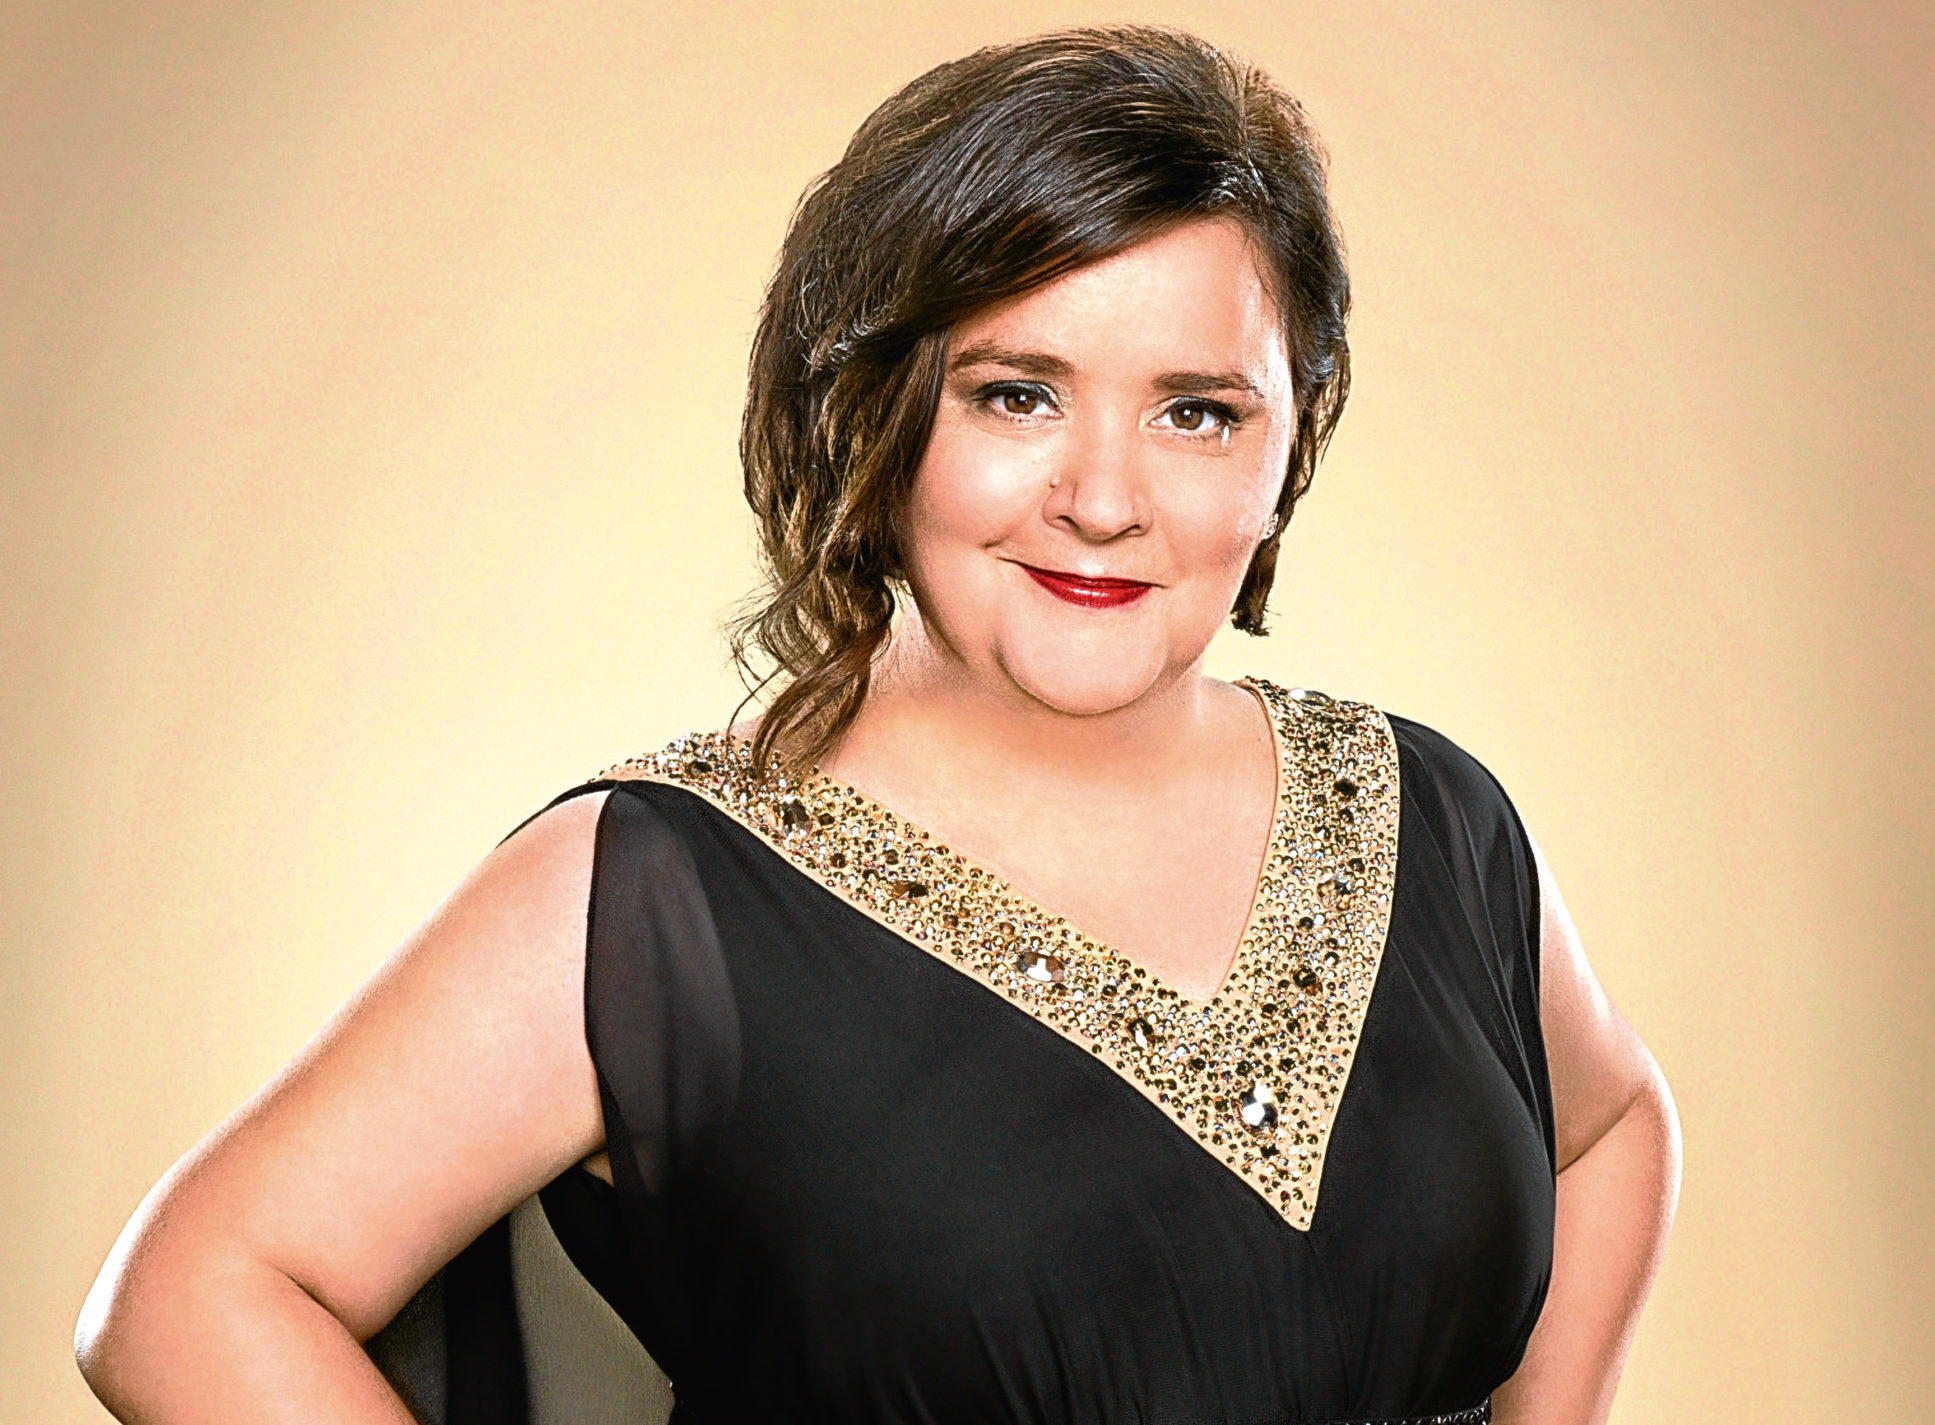 Susan Calman (BBC, Ray Burmiston)